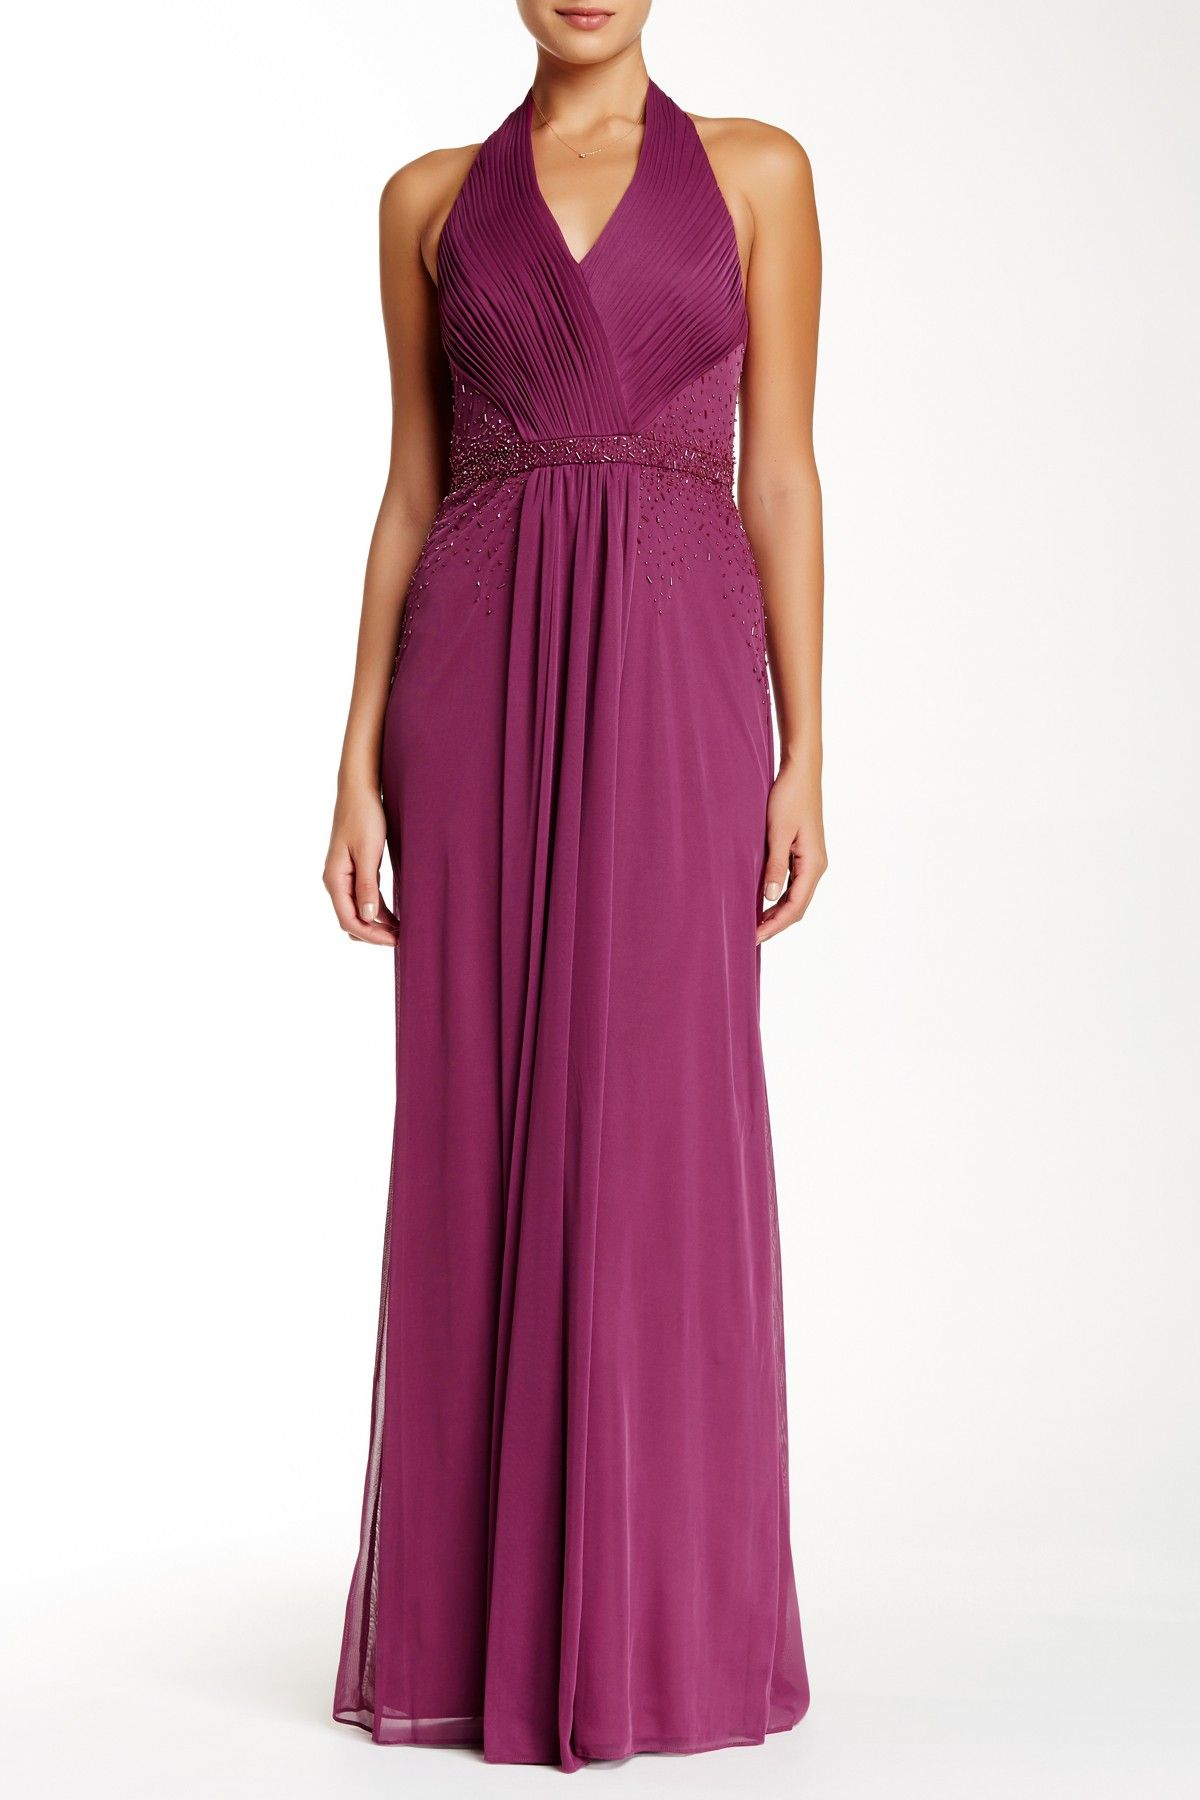 JS Boutique - Shirred Halter Gown at Nordstrom Rack. Free Shipping ...